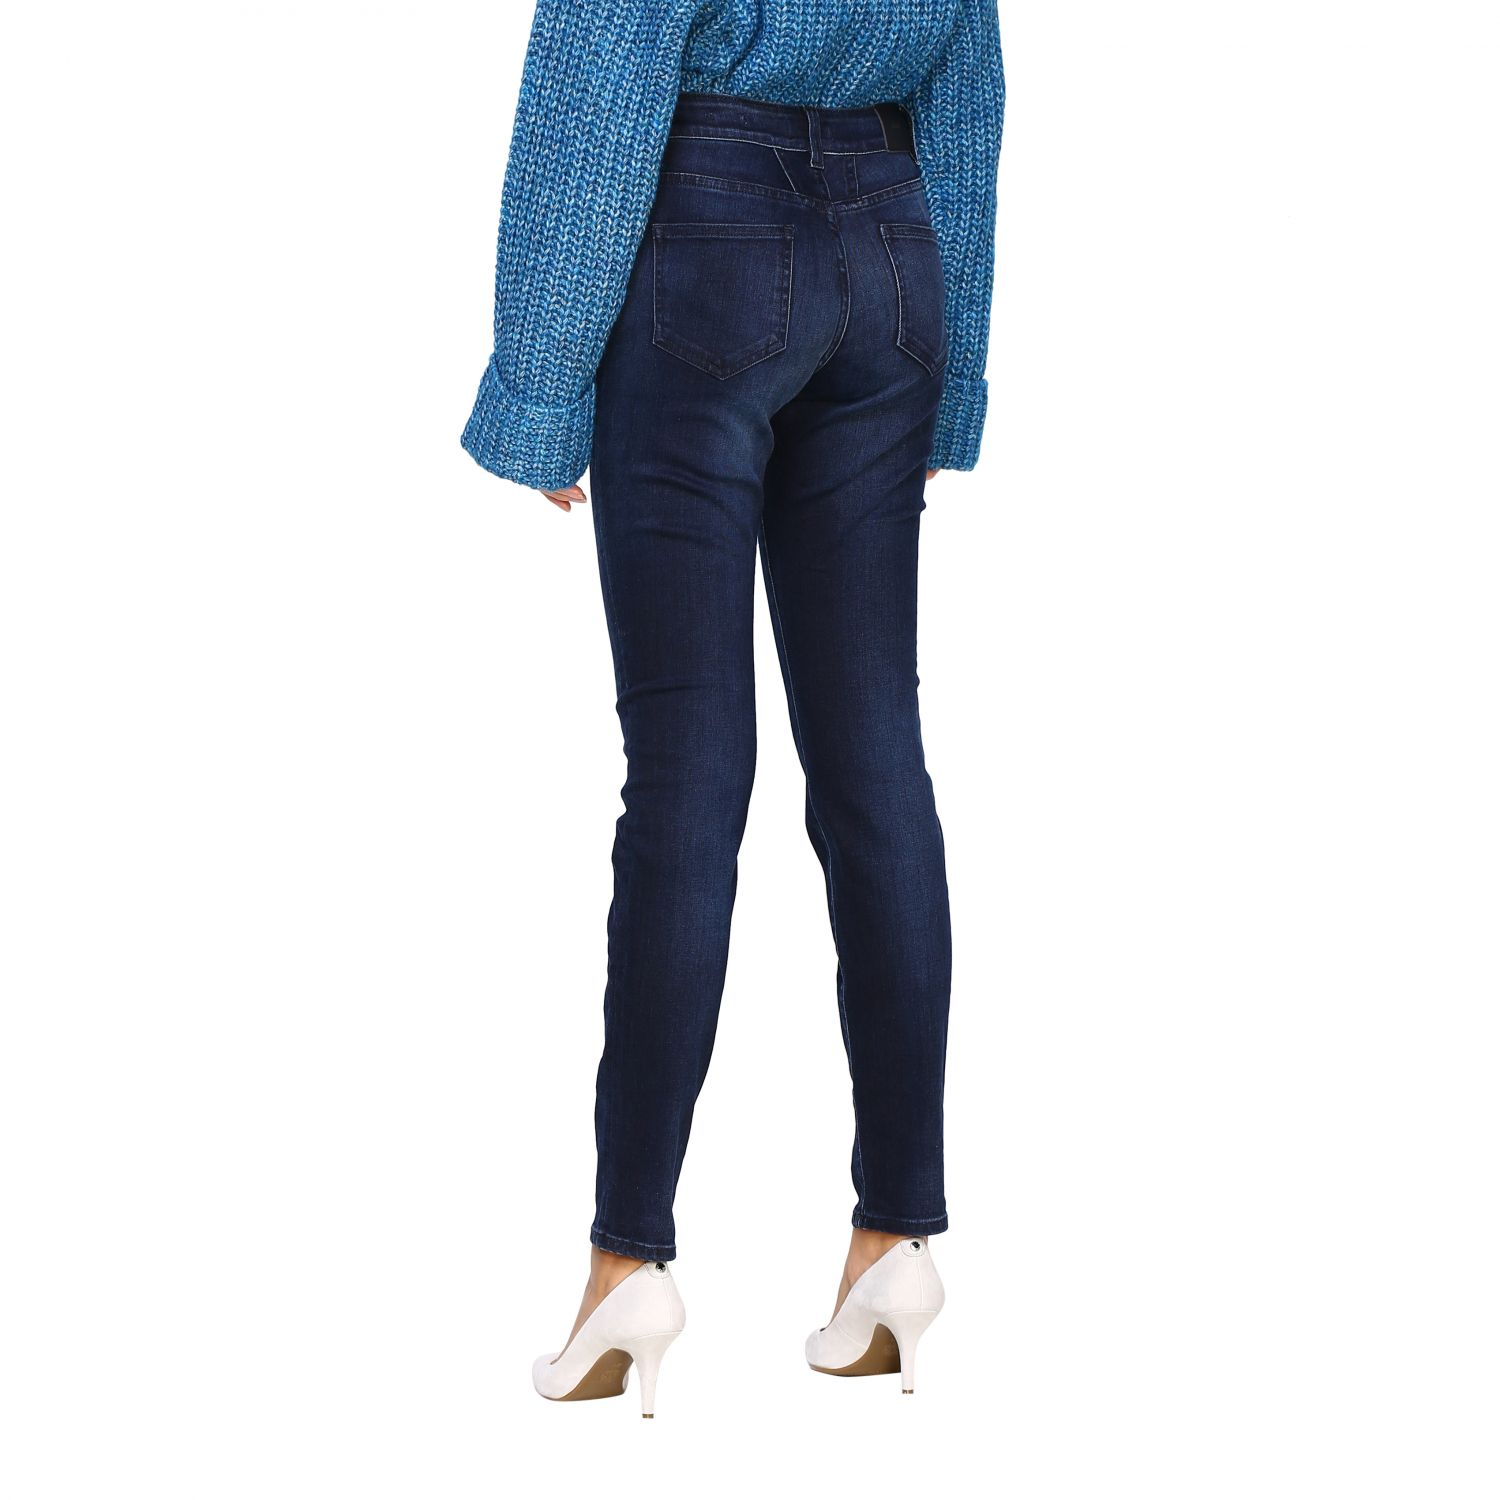 Jeans Closed: Jeans donna Closed blue 3